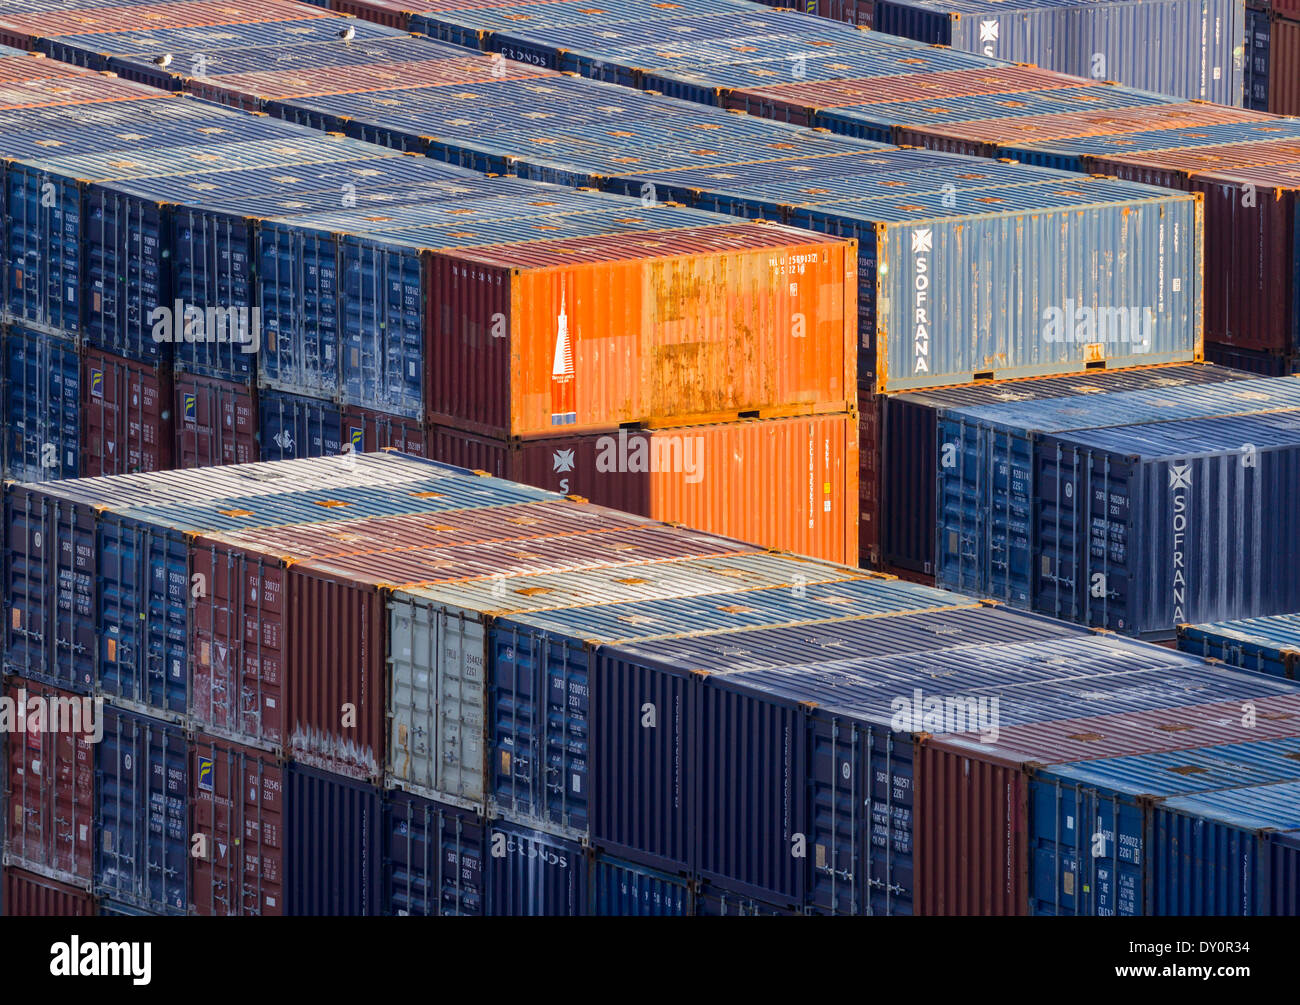 Stacks of industrial shipping containers at a port Stock Photo